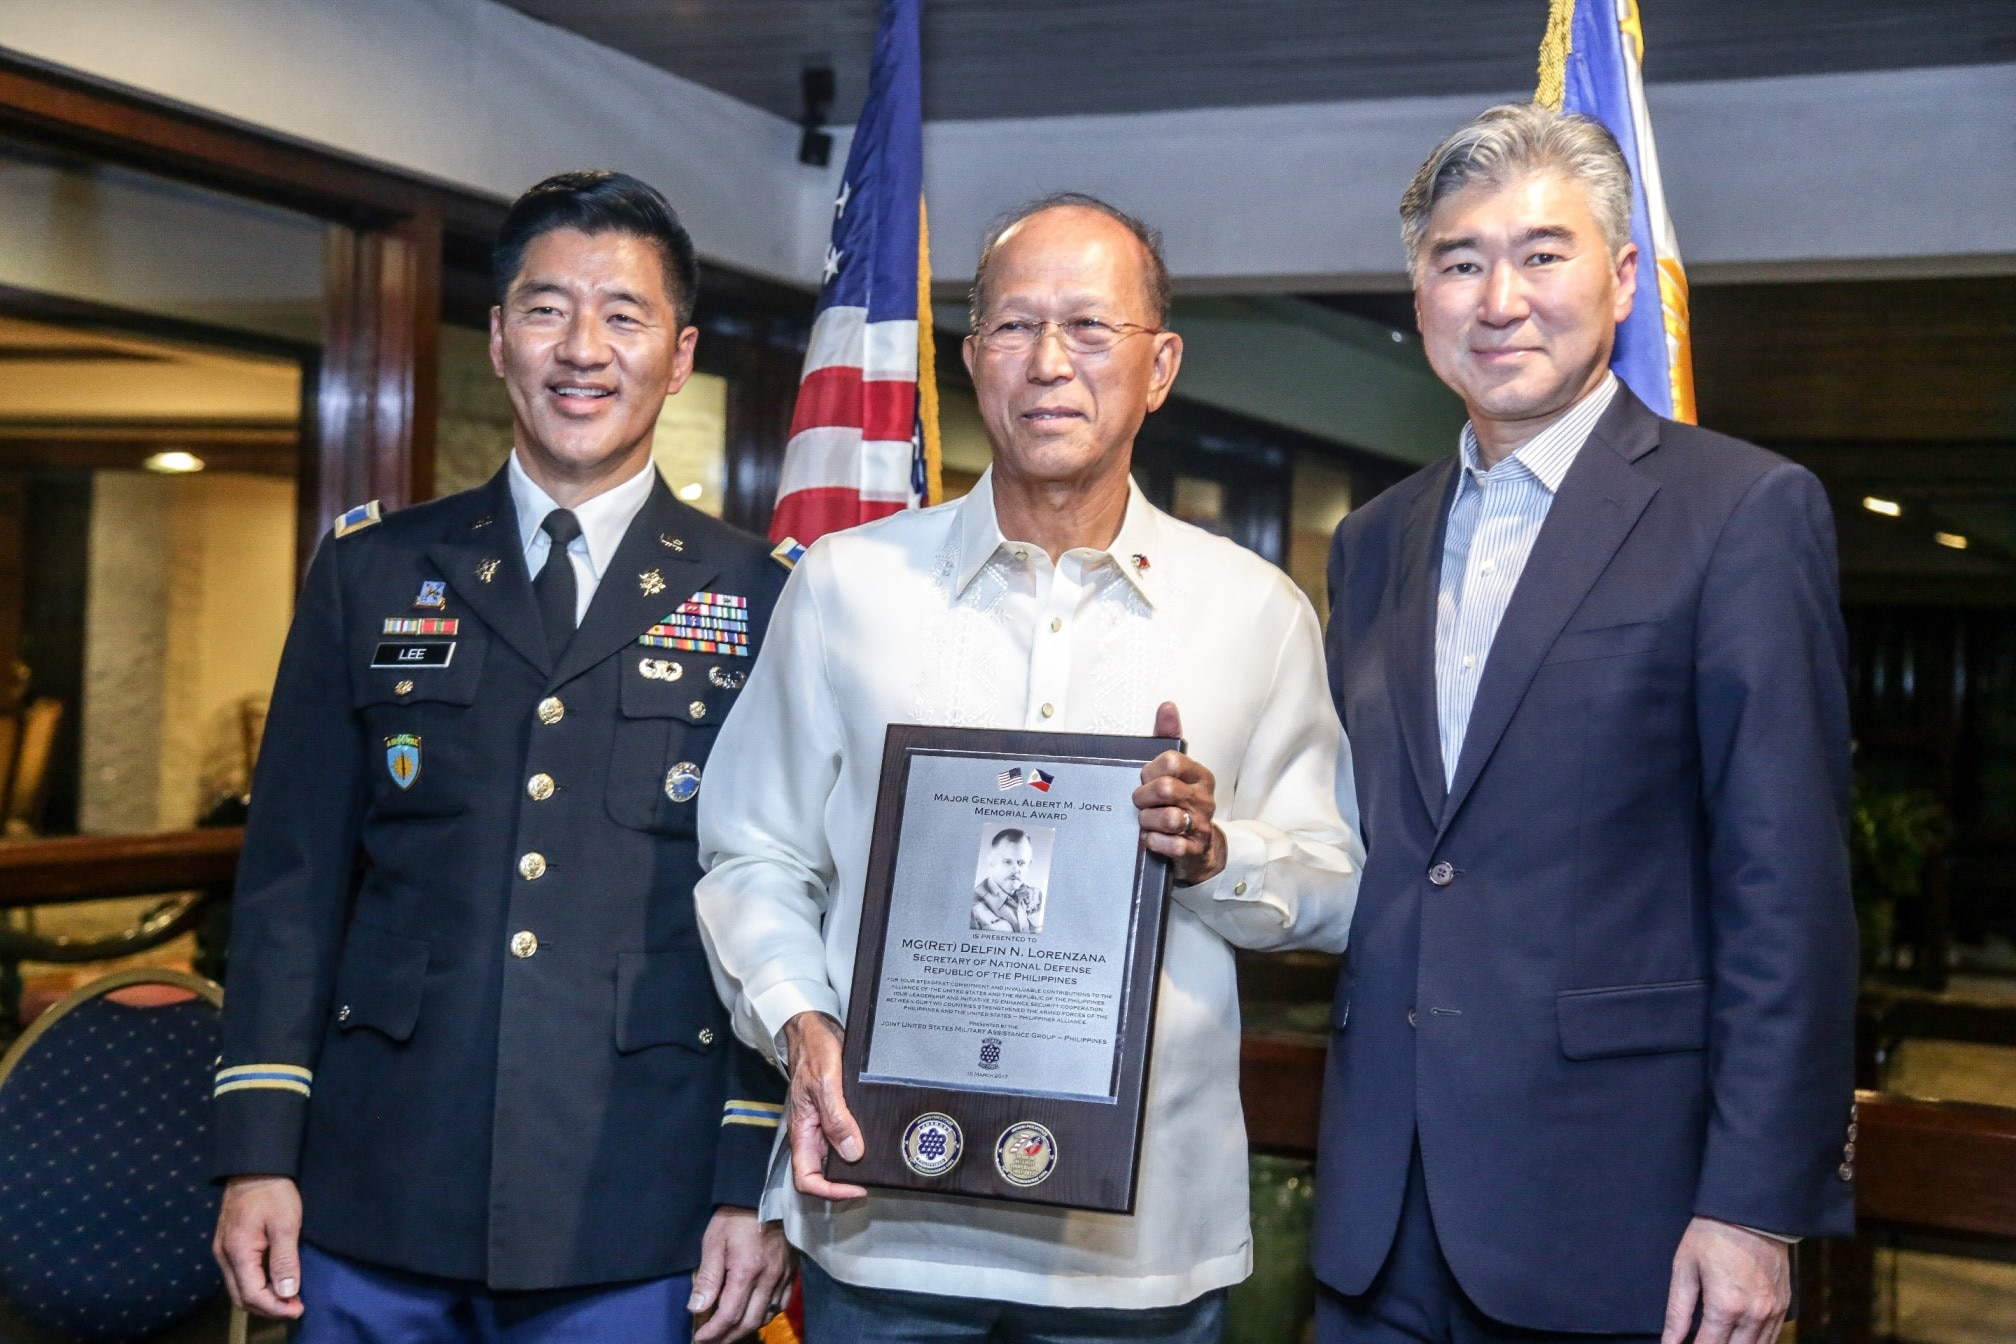 Ambassador Sung Y. Kim and Col. Ernest C. Lee present the Major General Albert Jones Memorial Award to Philippine Secretary of National Defense N. Delfin Lorenzana at the Joint U.S. Military Assistance Group's 70th anniversary celebration hosted at the U.S. Chief of Mission residence.